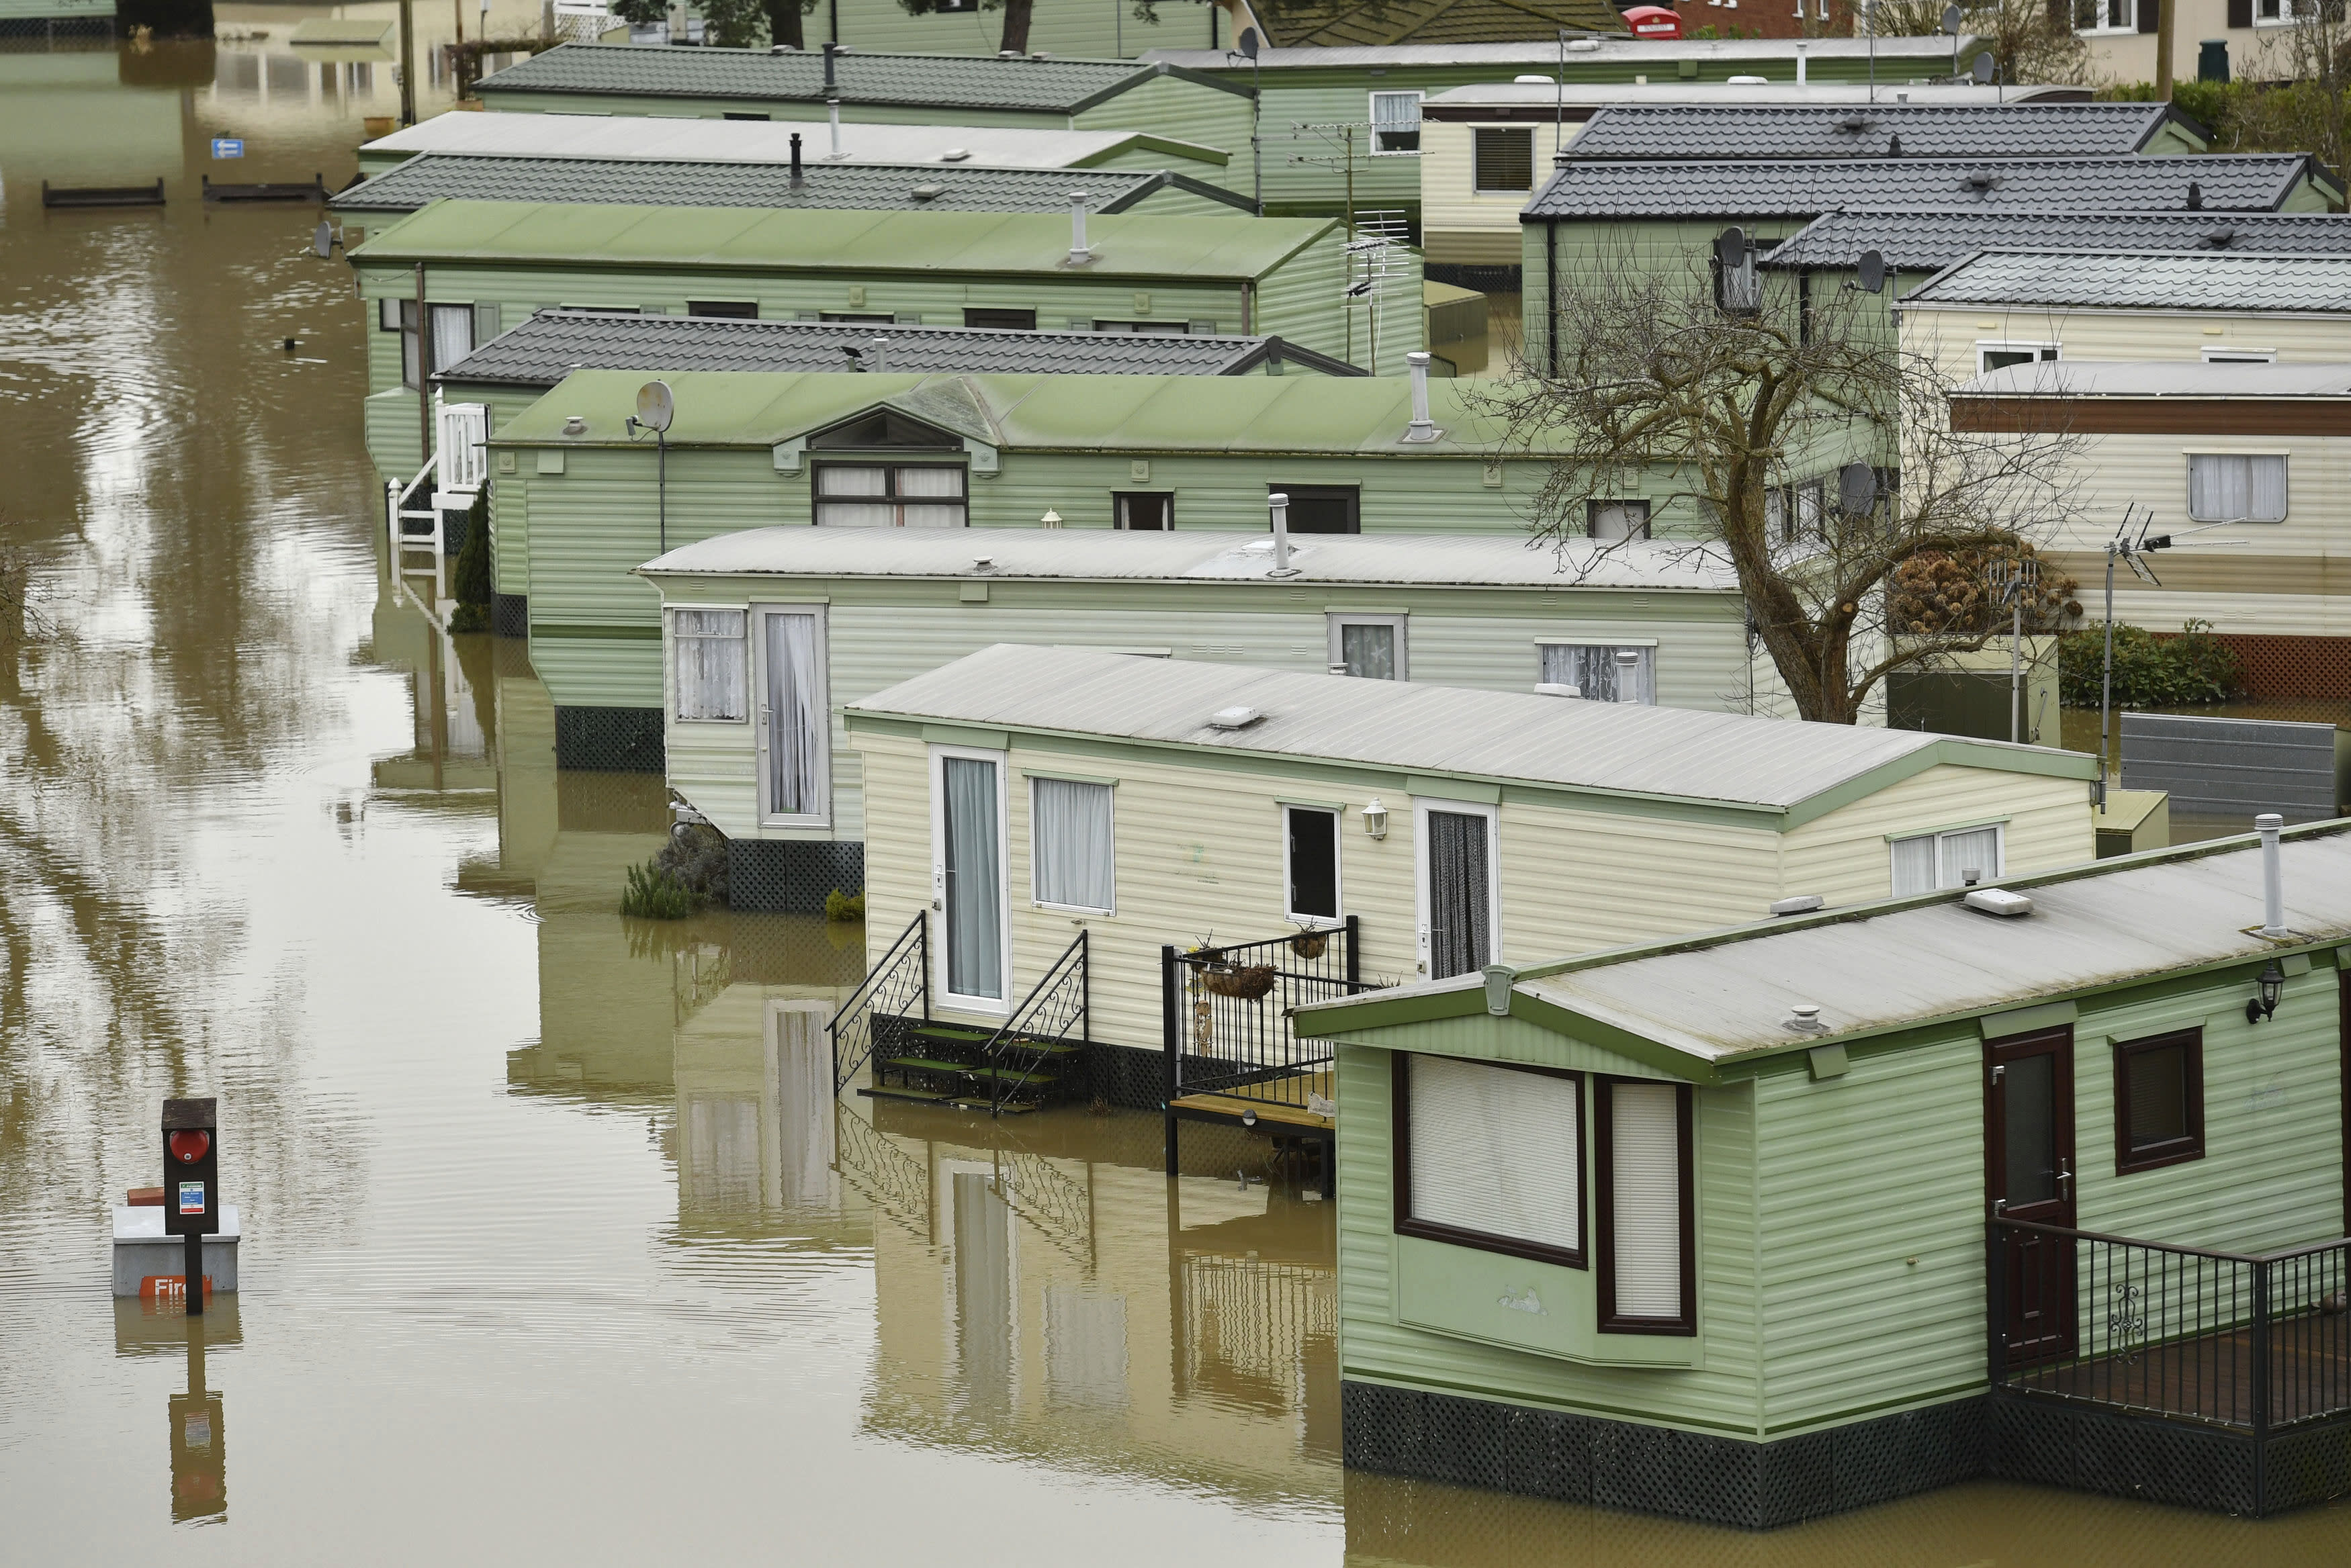 The Riverside Caravan Park is inundated by flood water after heavy rains breached the nearby river Severn and normal watercourses in the area of Bridgnorth, England, Wednesday Feb. 19, 2020. Flood-hit communities are braced for further heavy rain as river levels continue to threaten to breach barriers, in the aftermath of Storm Dennis which has swept northern Europe. (Jacob King/PA via AP)